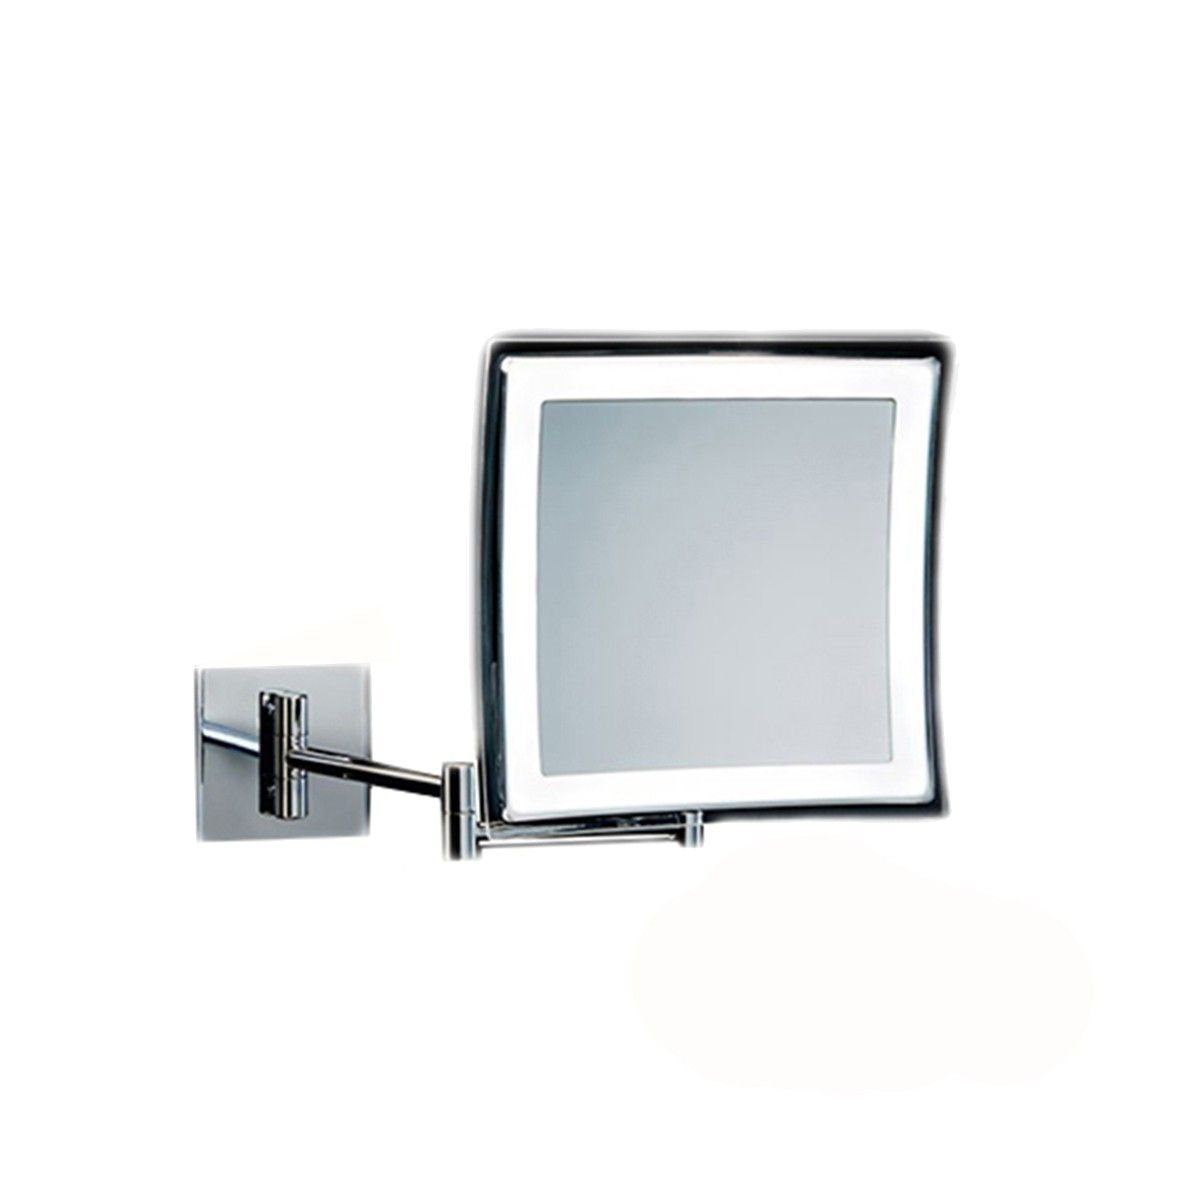 Smile 840 Battery Operated Wall Mounted Magnifying Mirror 5x